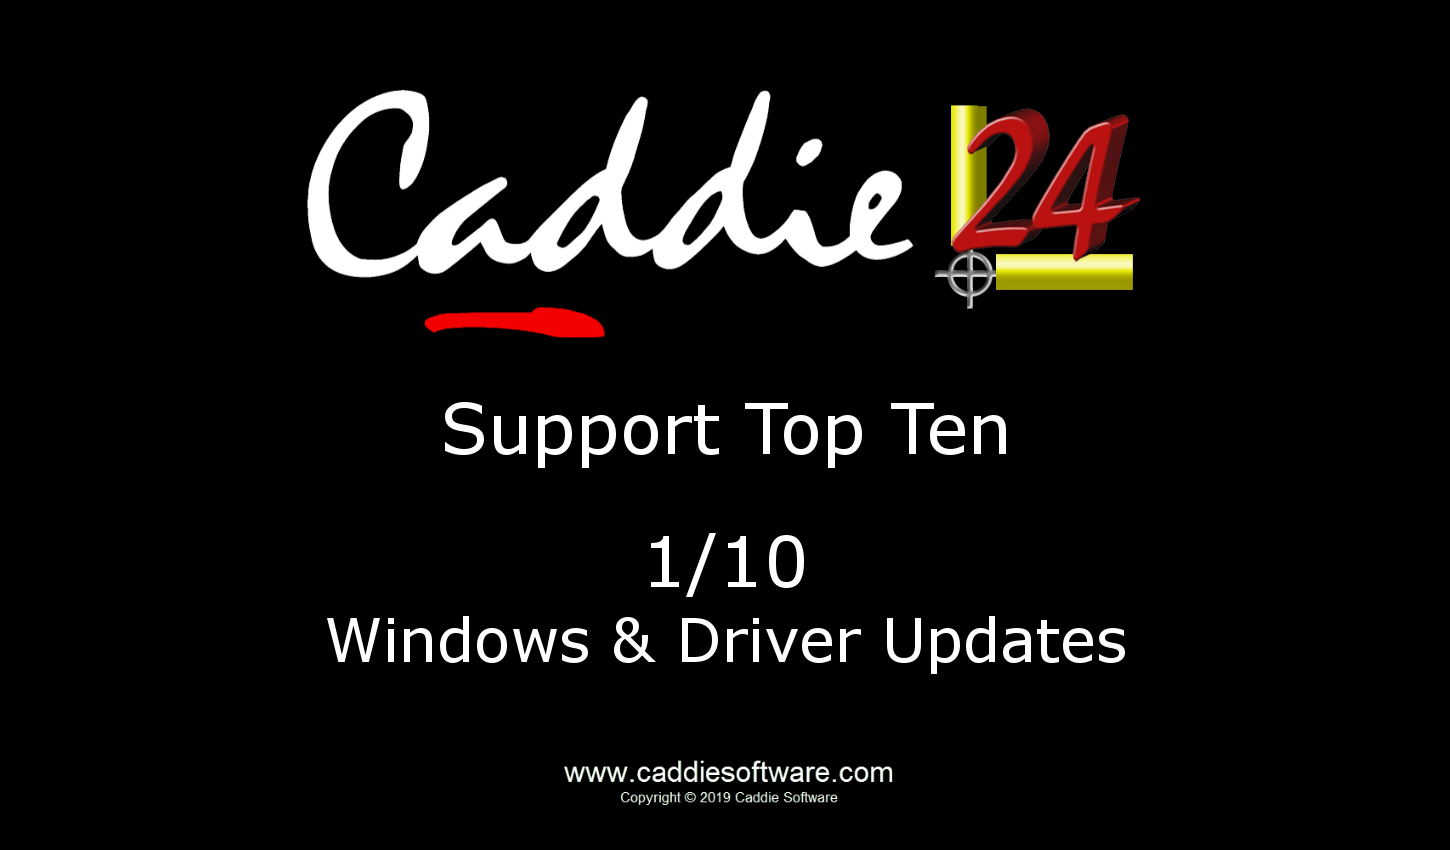 # 1/10 Windows and Driver Updates